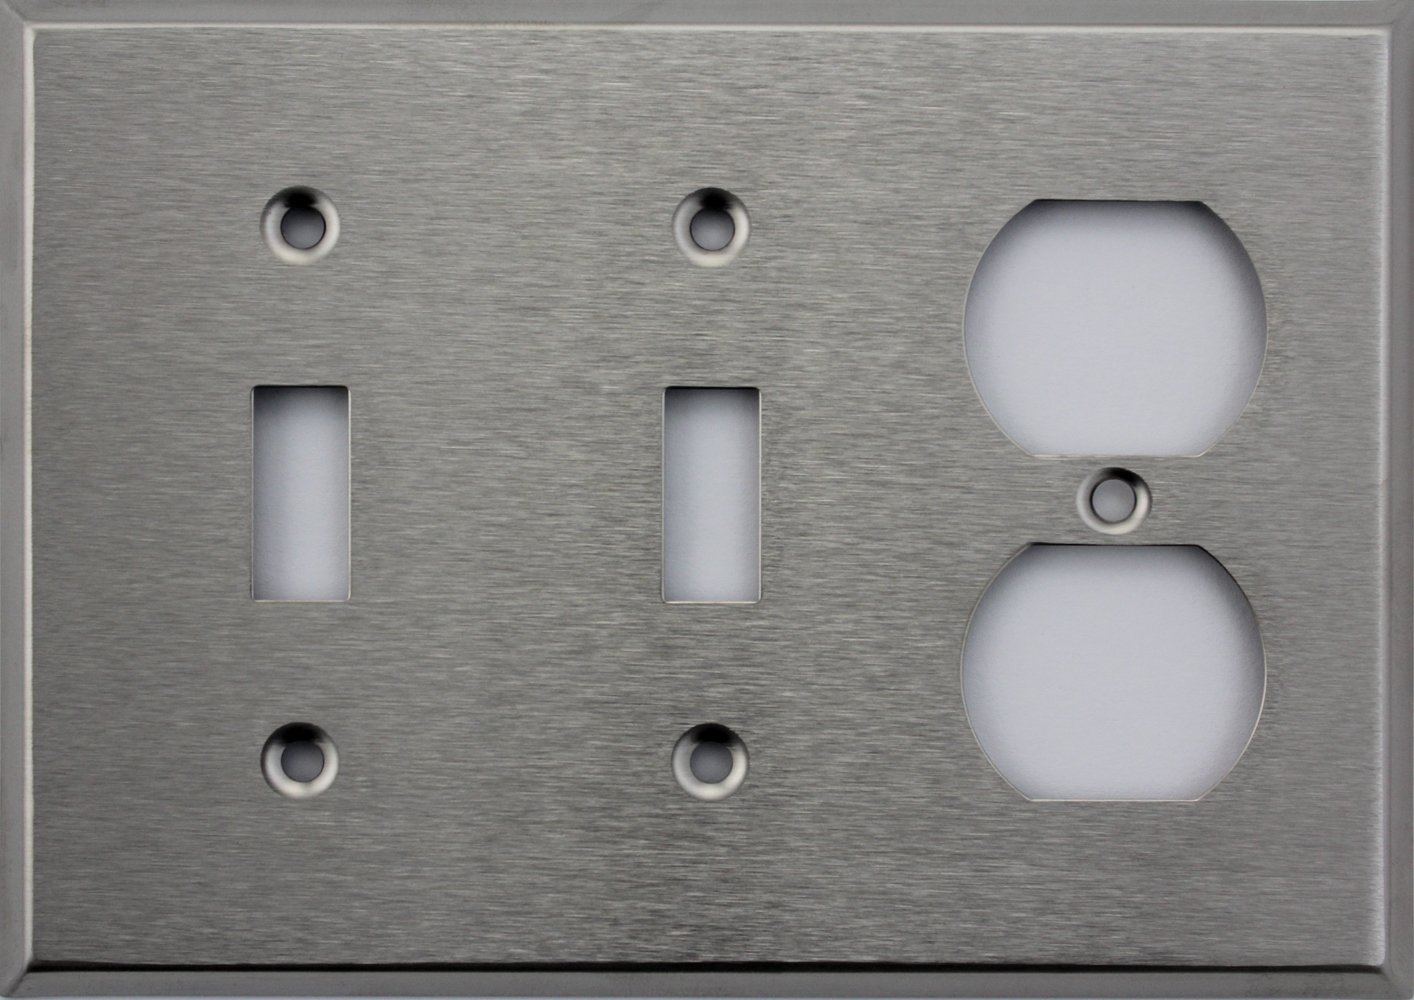 Brushed Satin Stainless Steel Three Gang Wall Plate Two Toggle Switches One Duplex Outlet